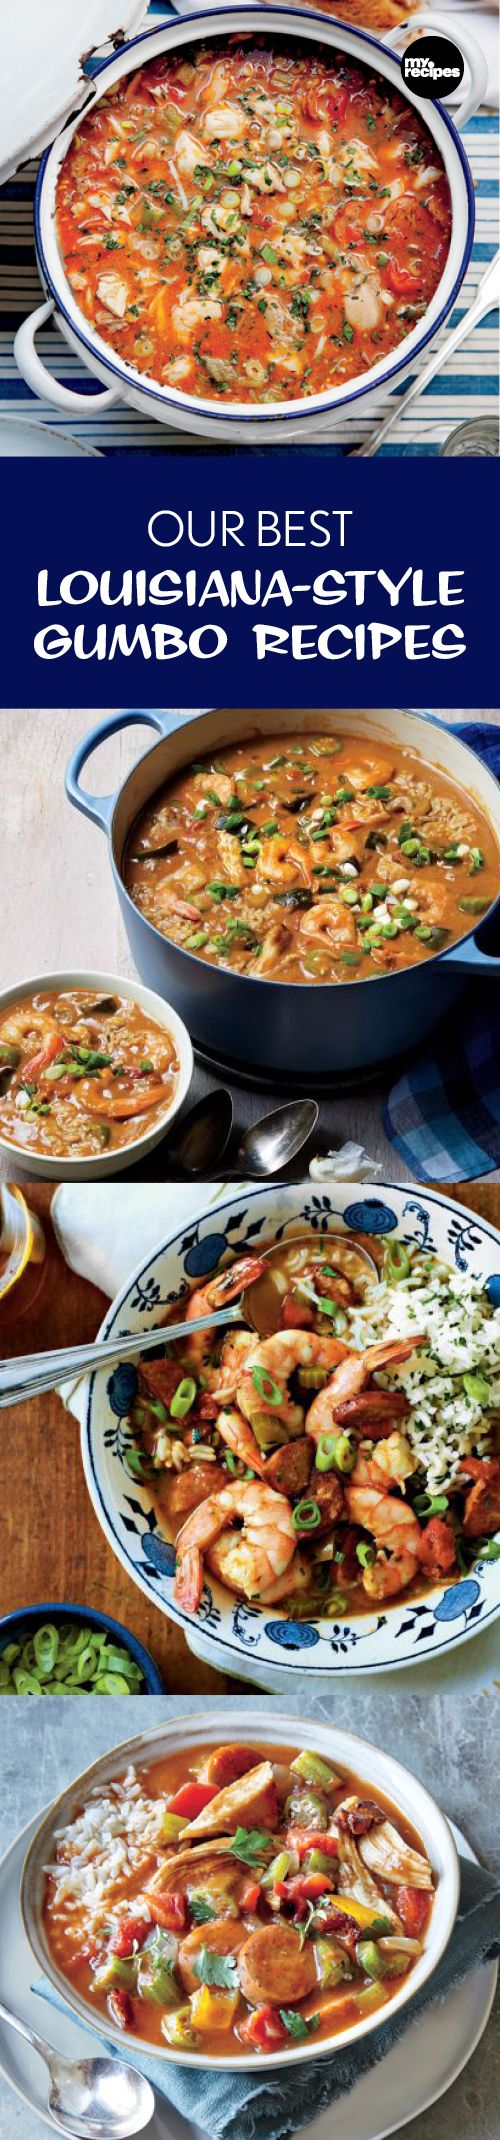 Our Best Louisiana-Style Gumbo Recipes | MyRecipes  Whip up a big pot of the good stuff and bring some cajun flair to your neck of the woods with these fantastic down-home gumbo recipes. (Fish Sandwich Recipes)